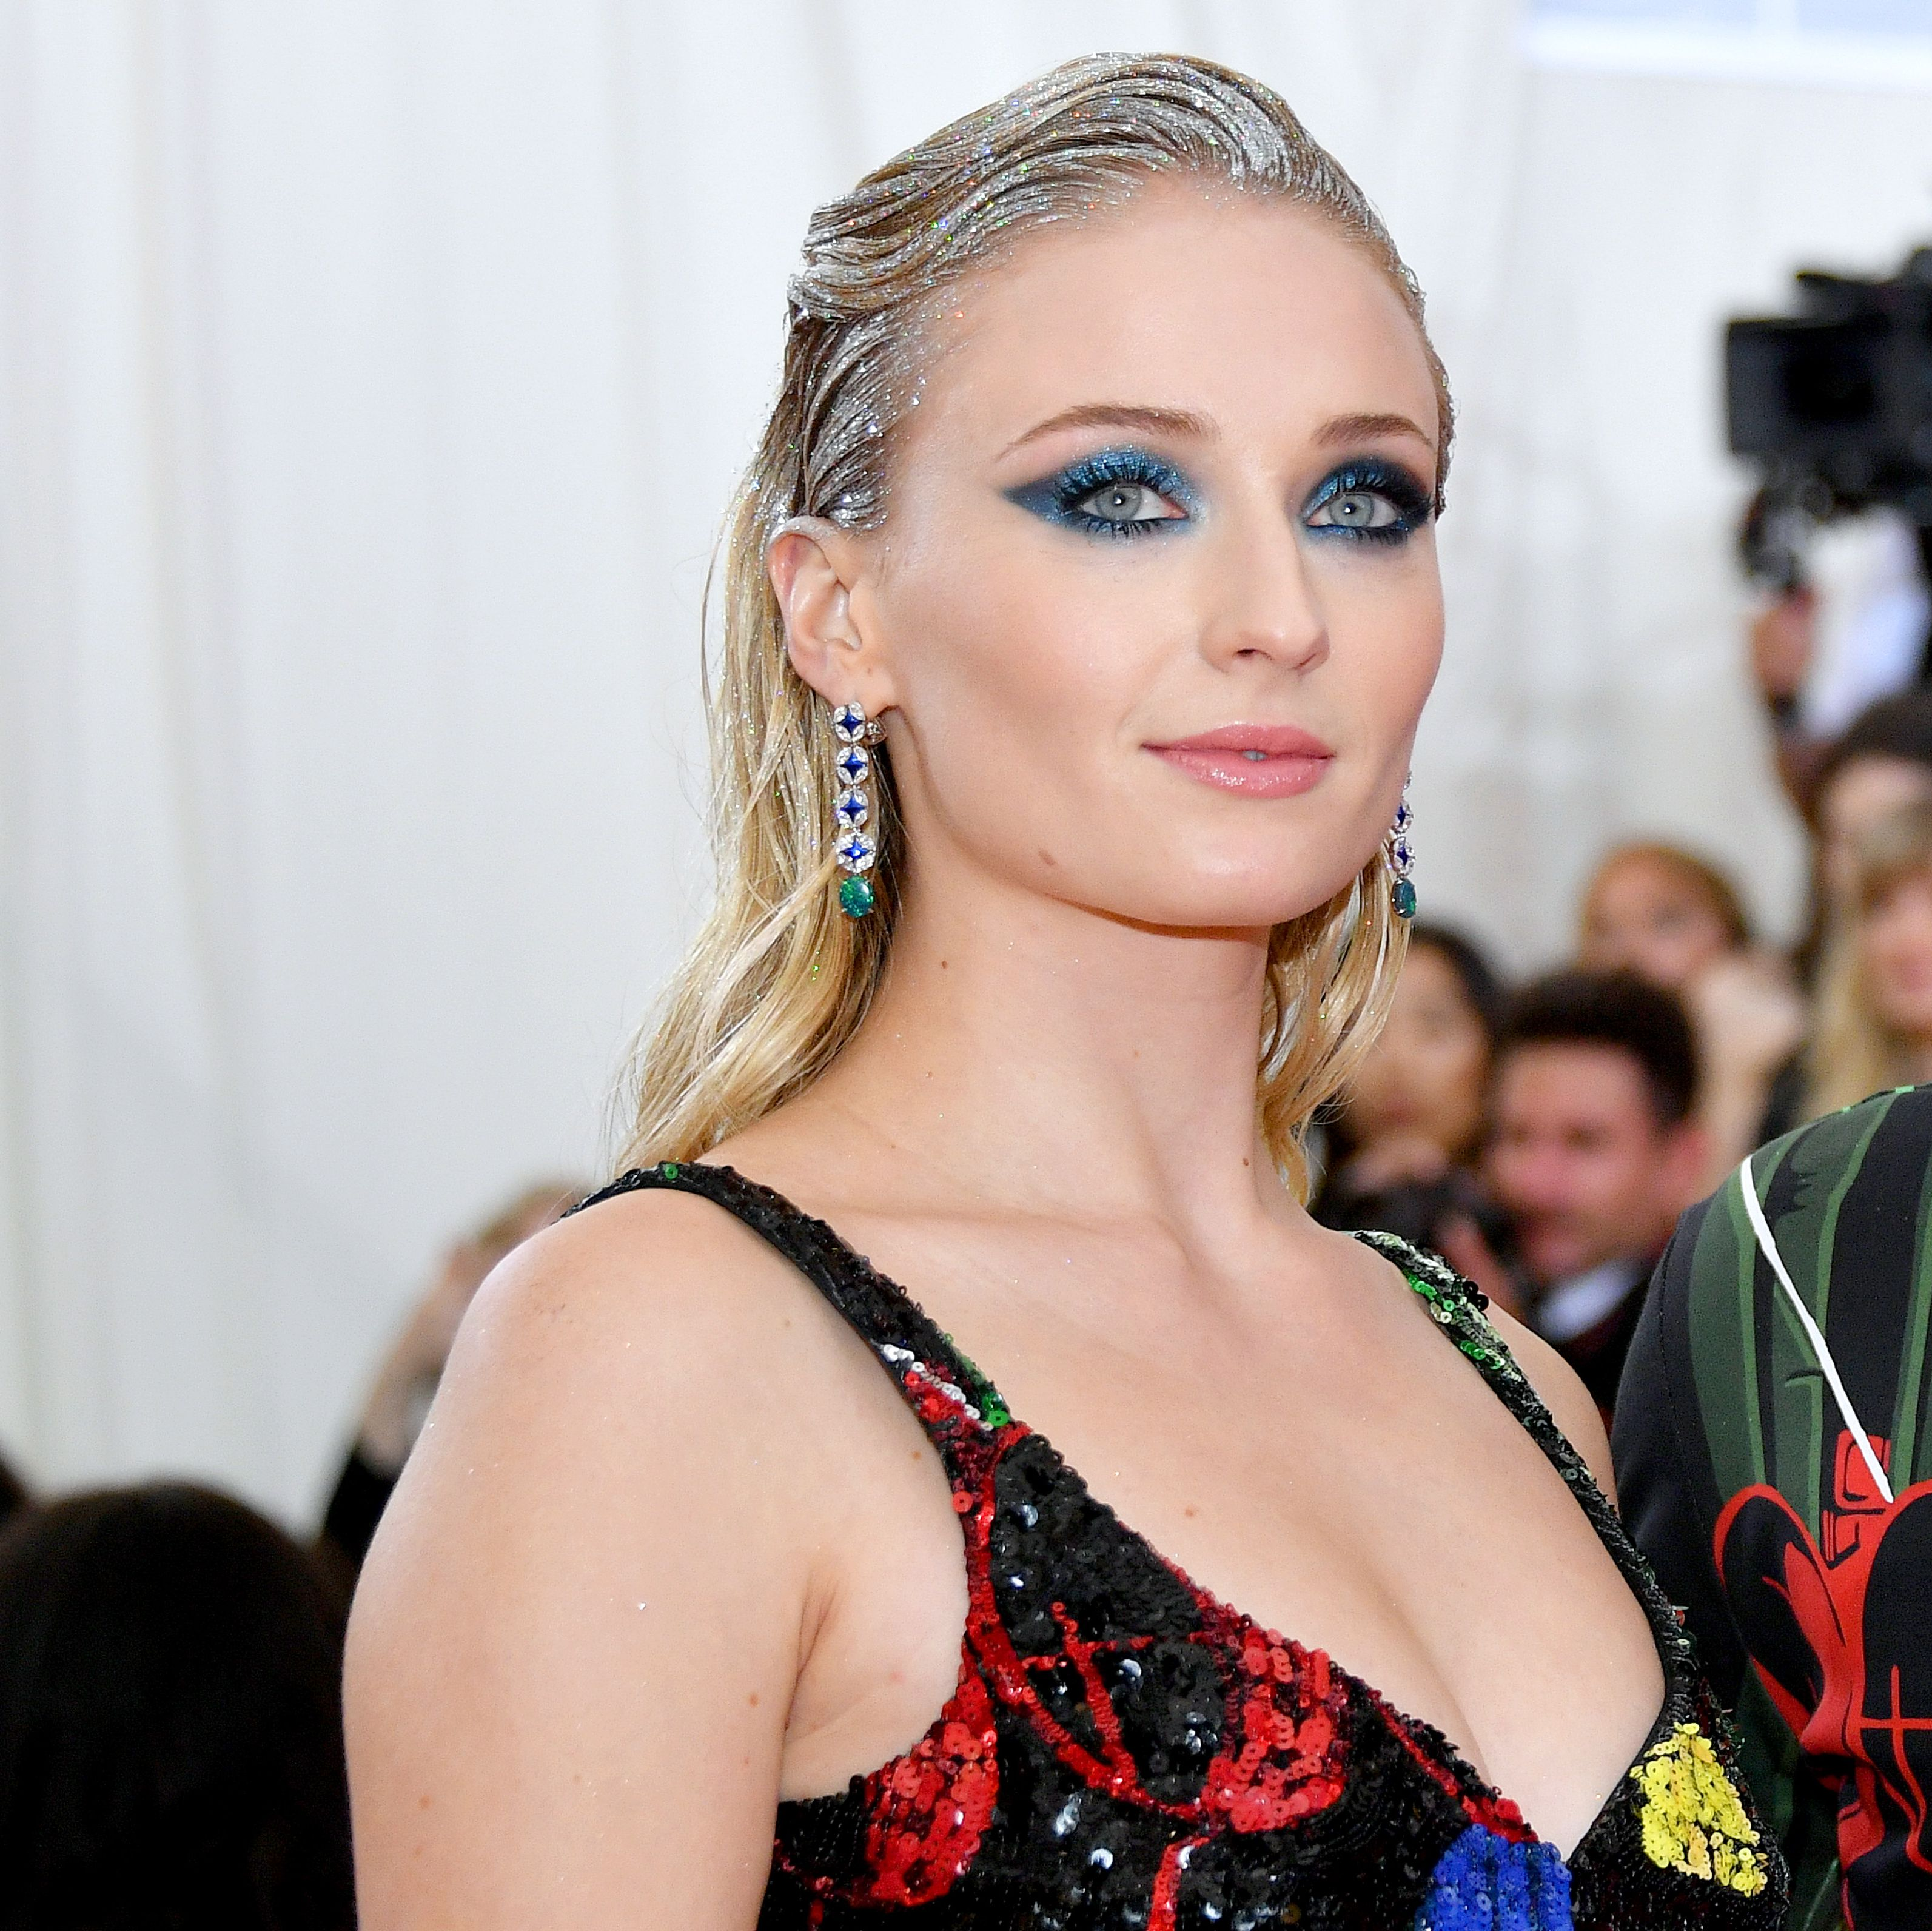 Sophie Turner The Game of Thrones star wore streaks of silver glitter in her hair. The metallic theme continued with a winged blue smoky eye.